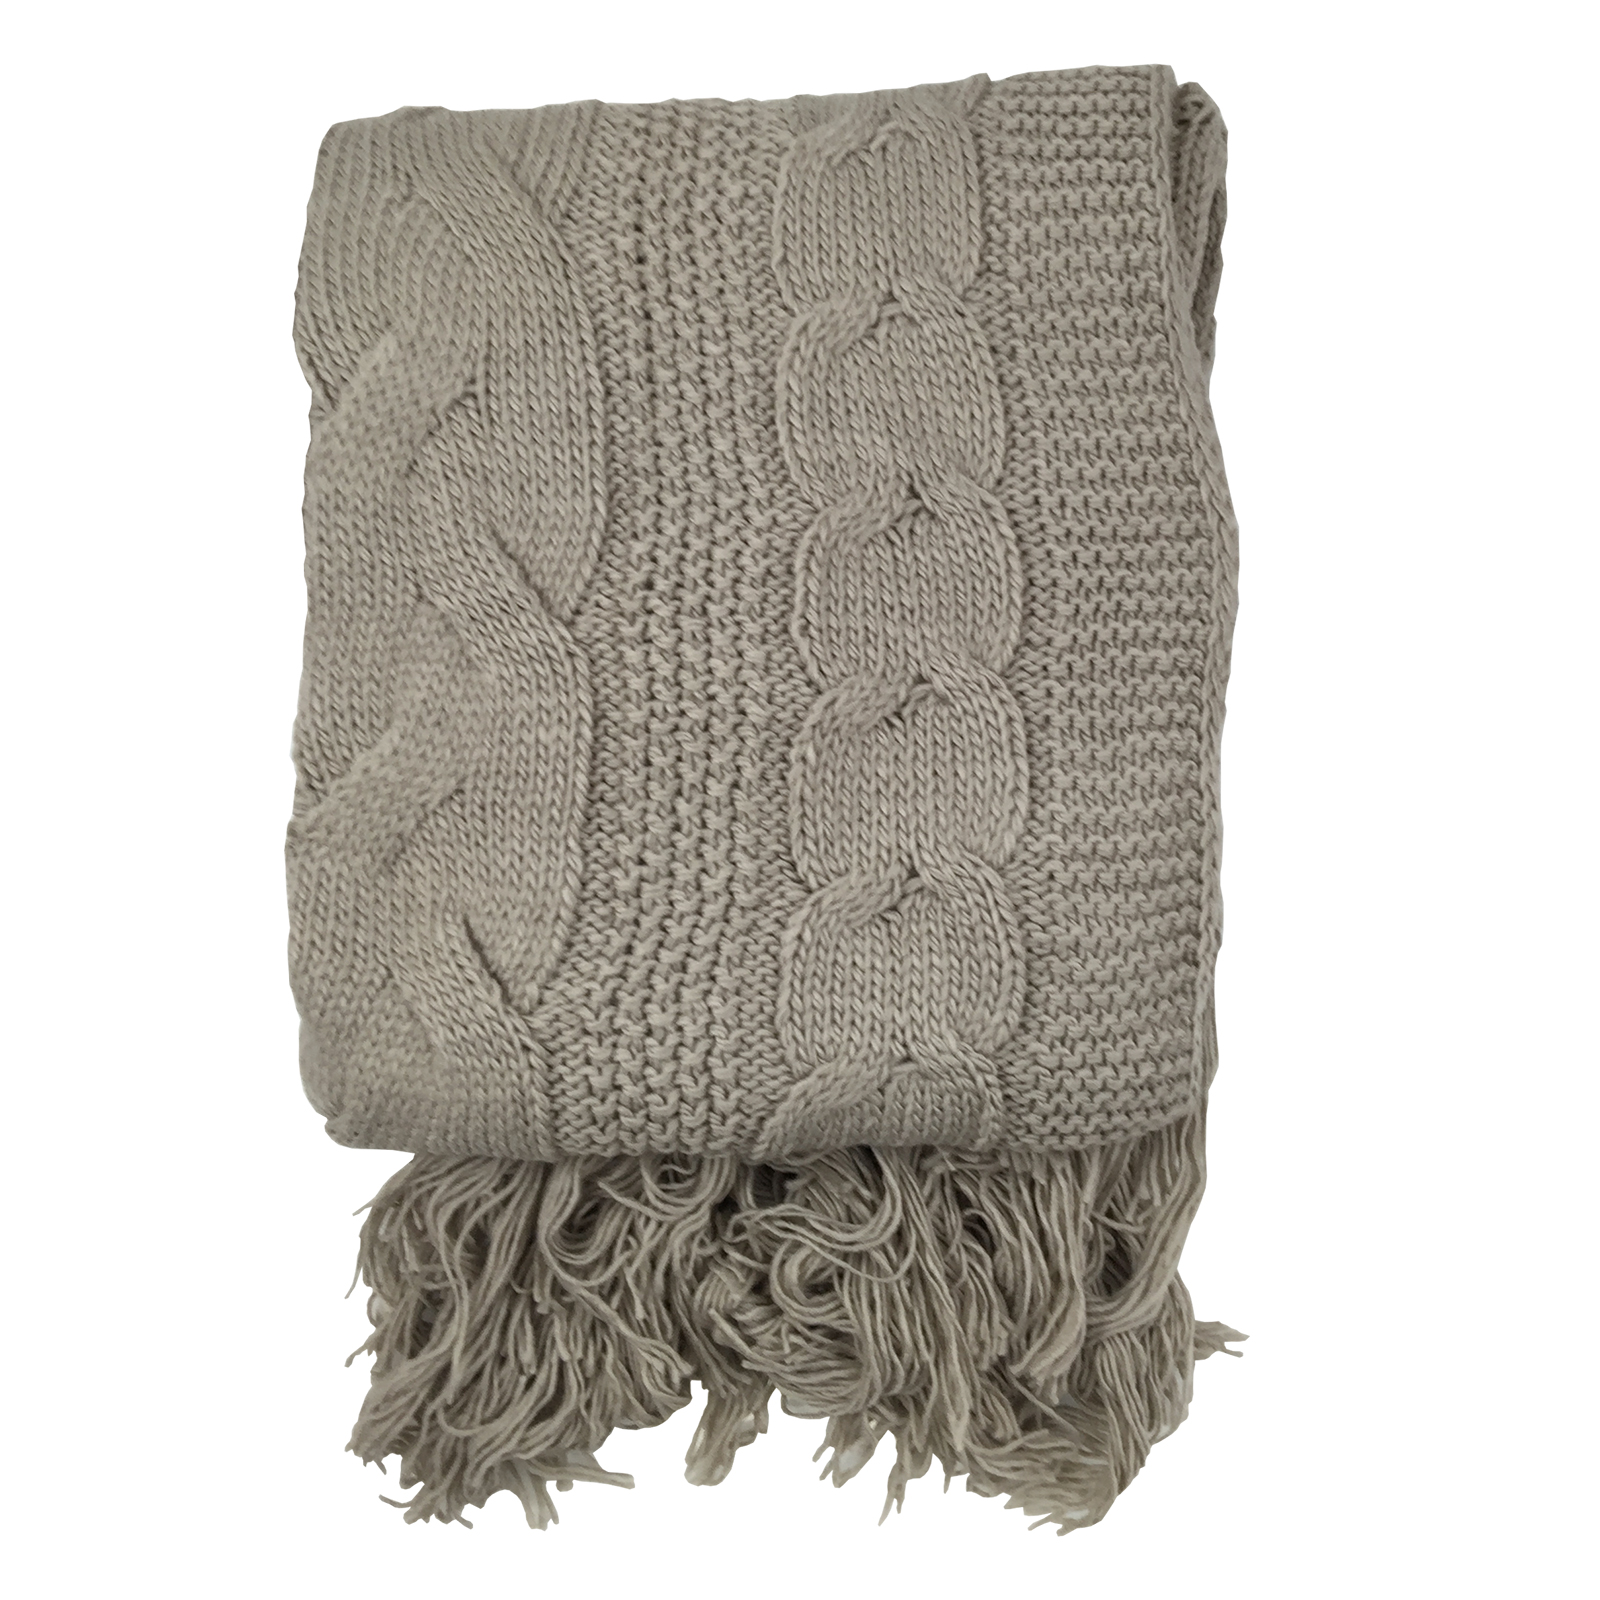 Soft Cable Stitch Knitted Throw Blanket with Tasselled Edge   For Sofas &...